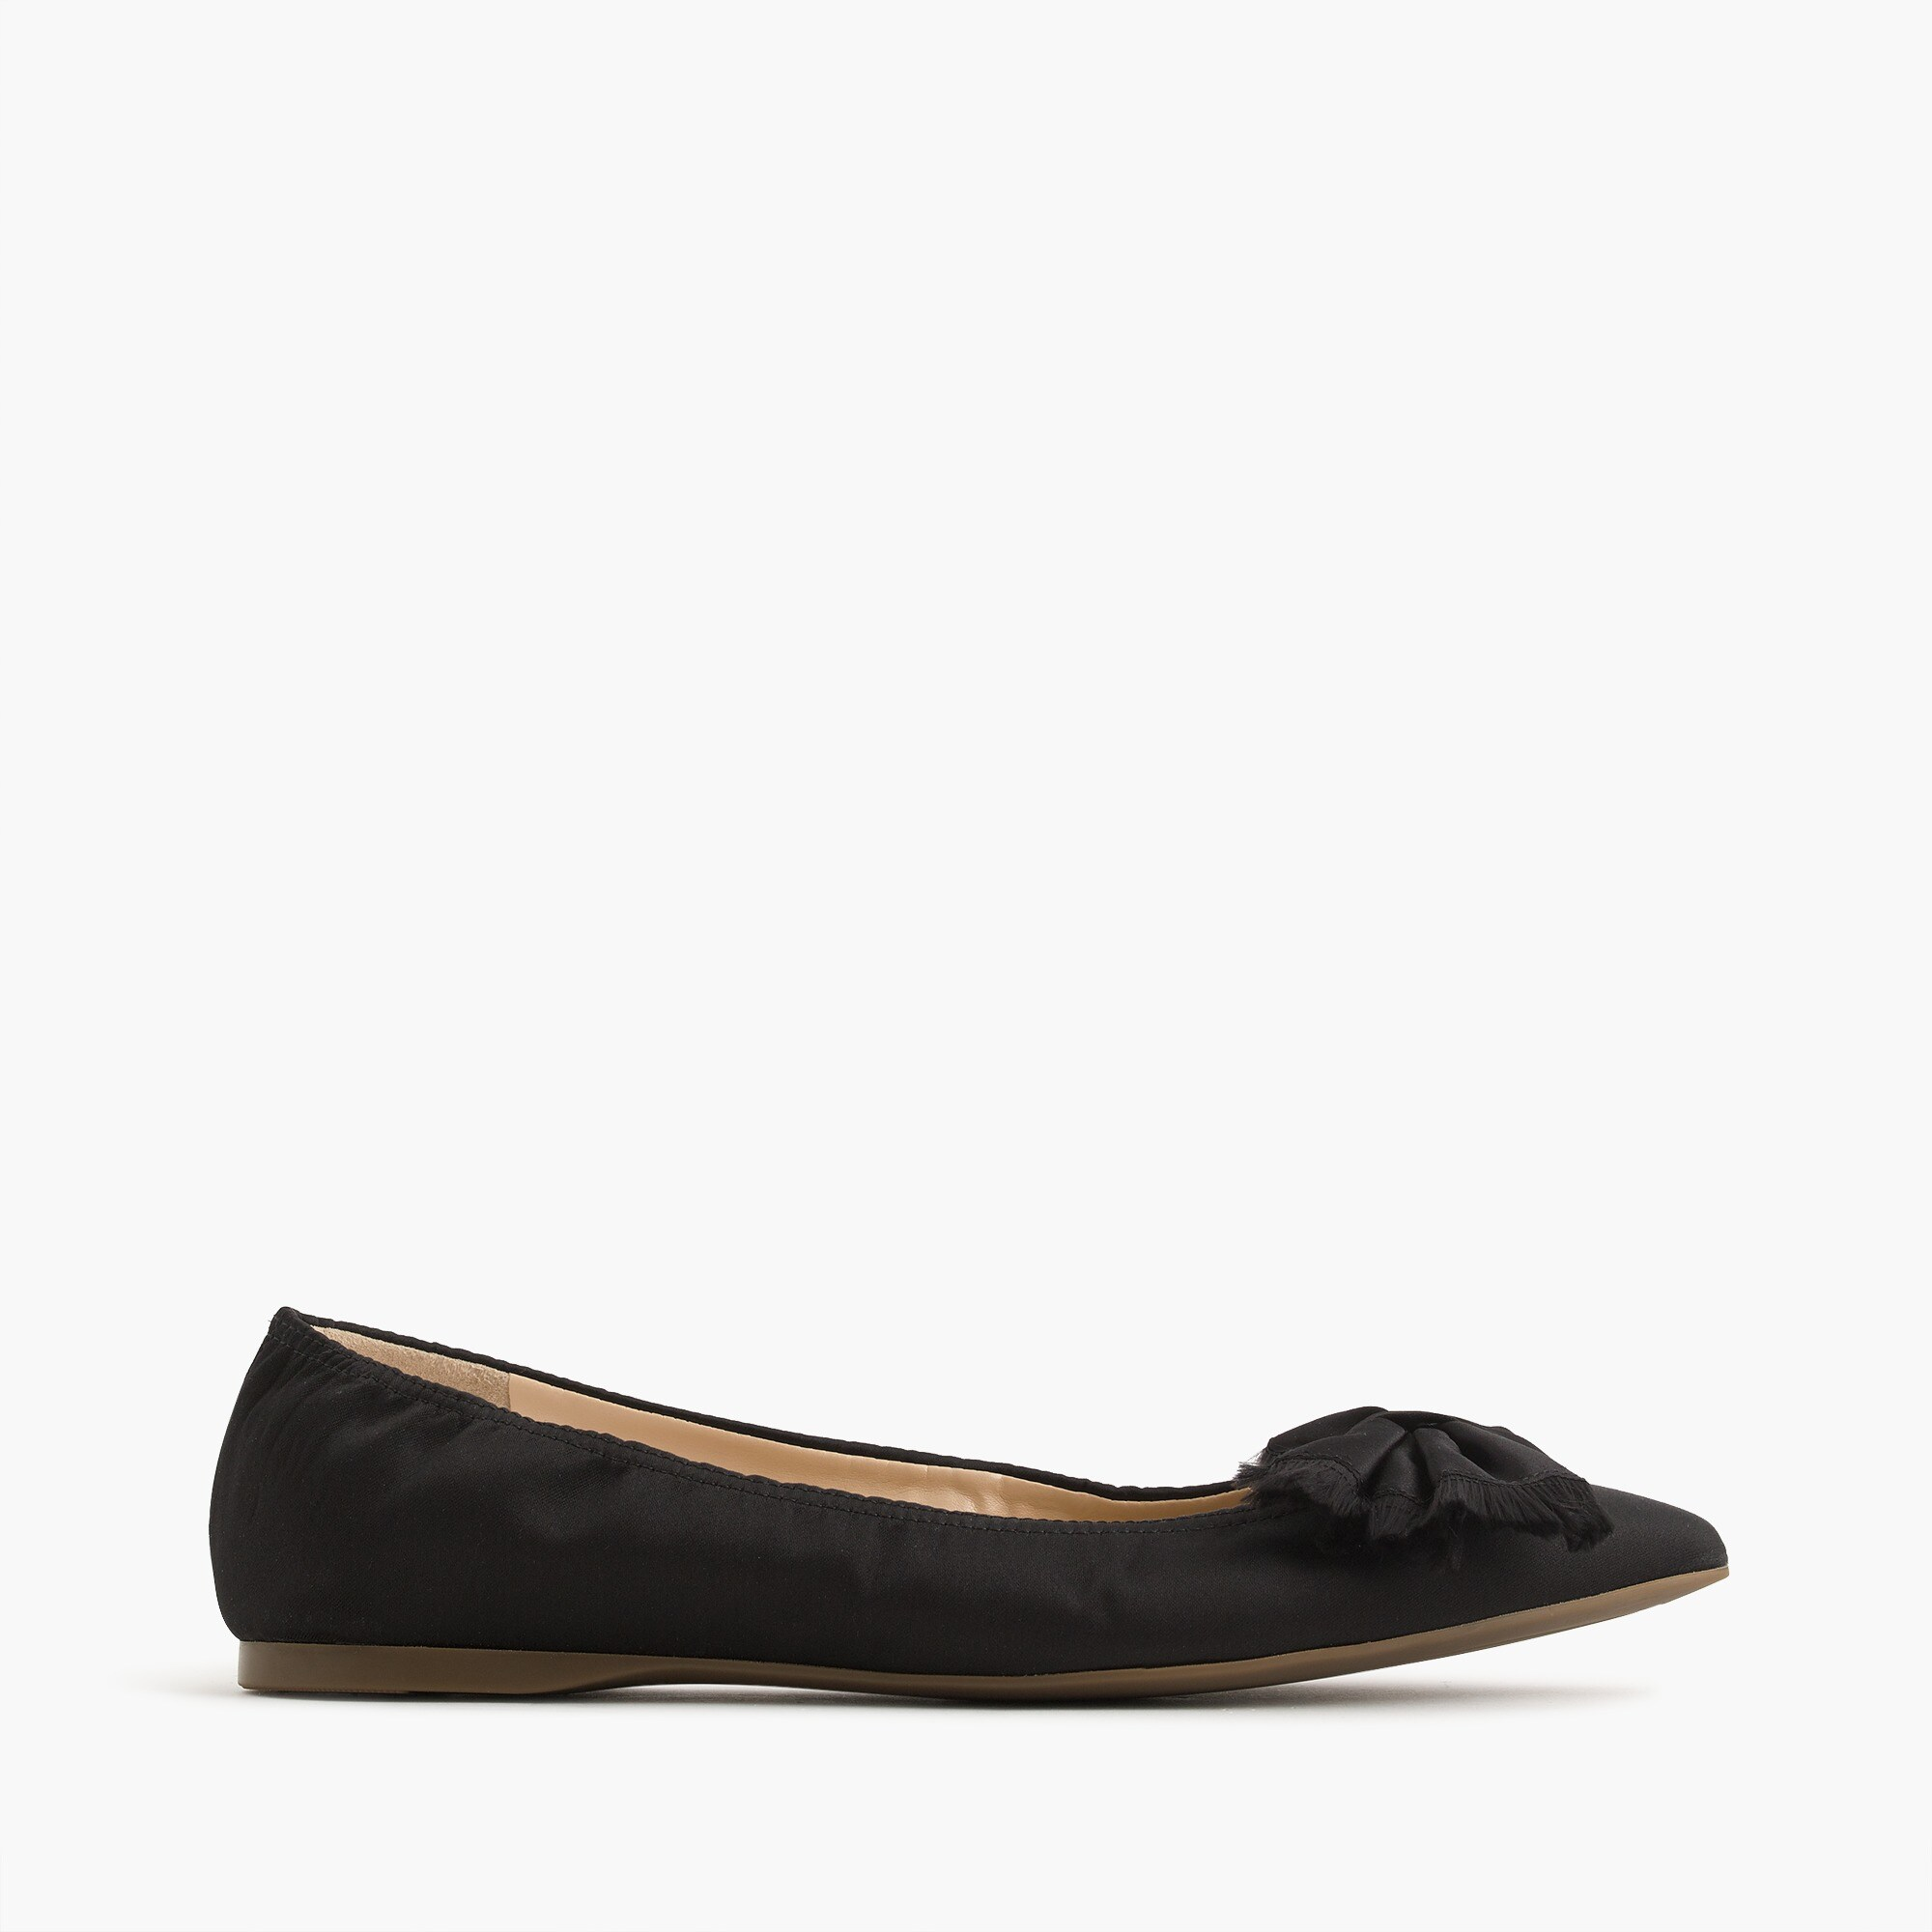 lottie flats in satin : women flats